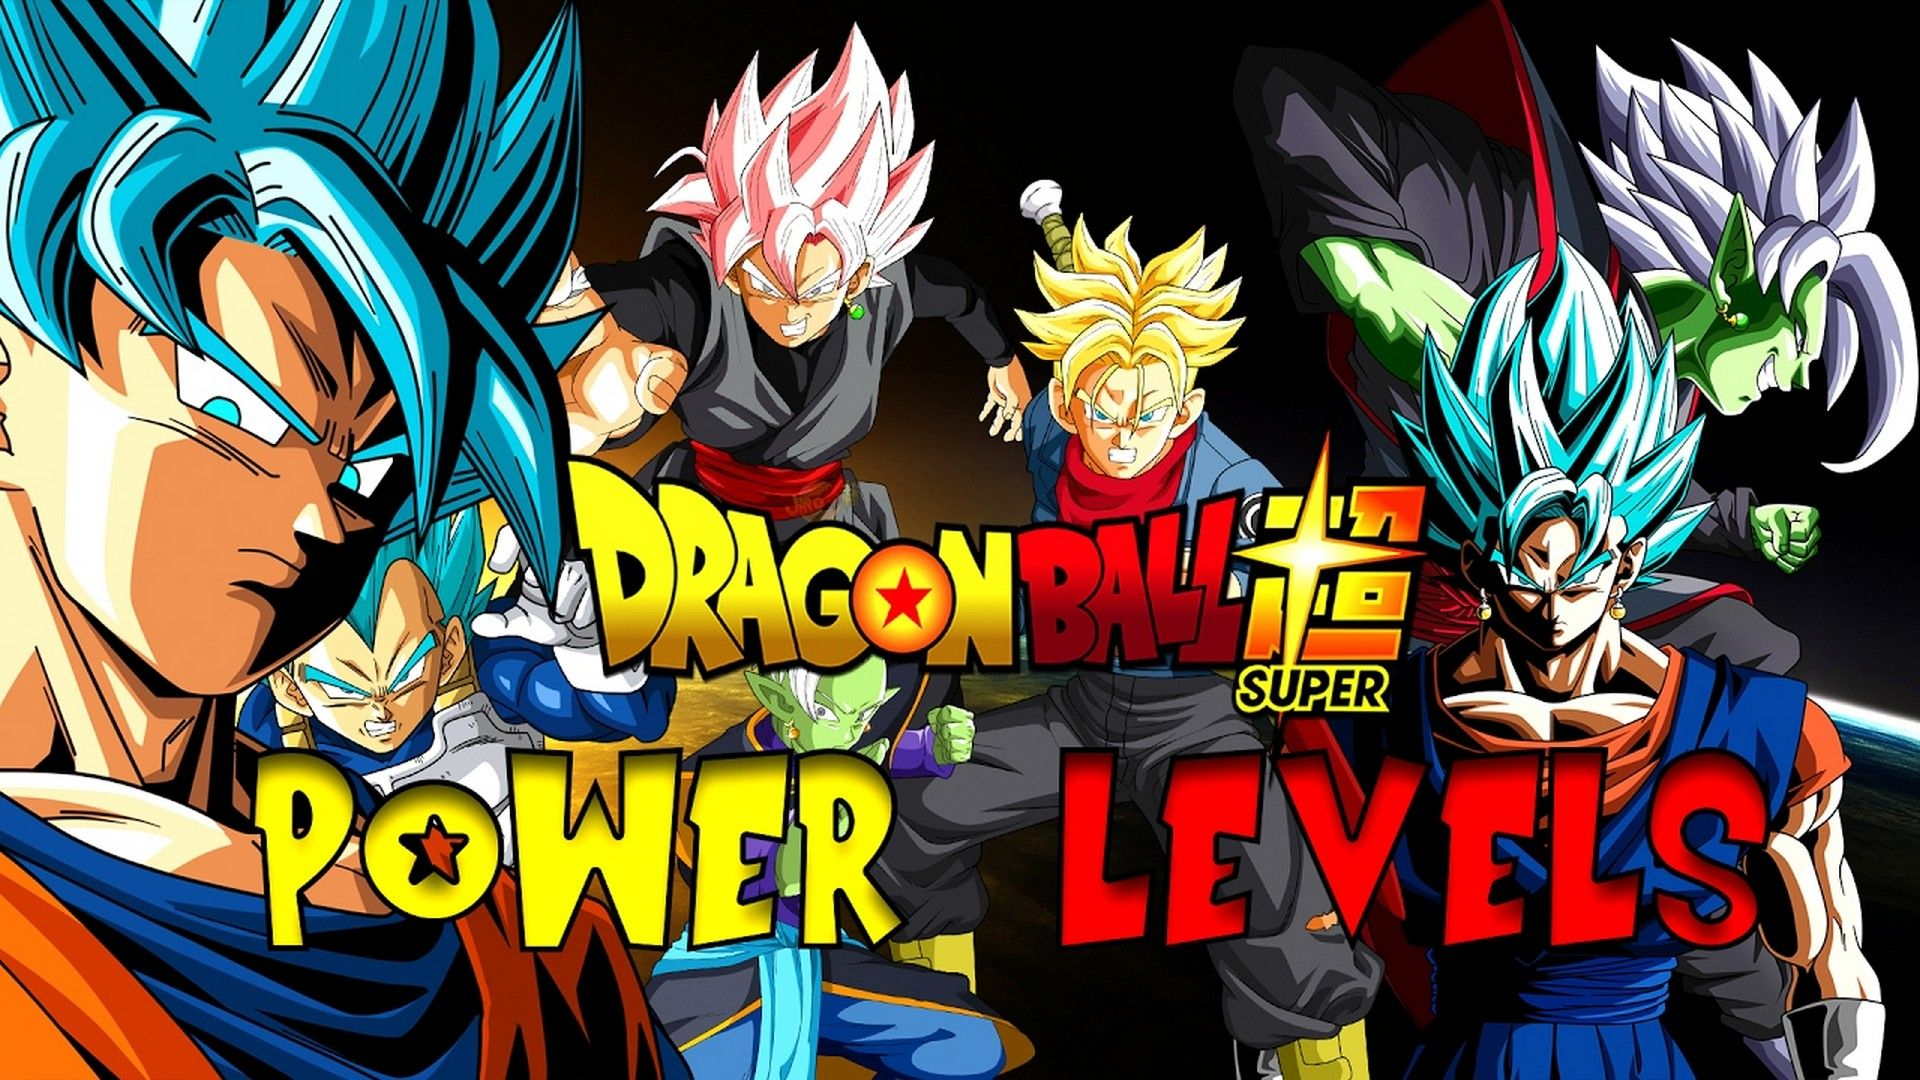 Dragon Ball Super Power Levels Wallpaper Wallpaper Super